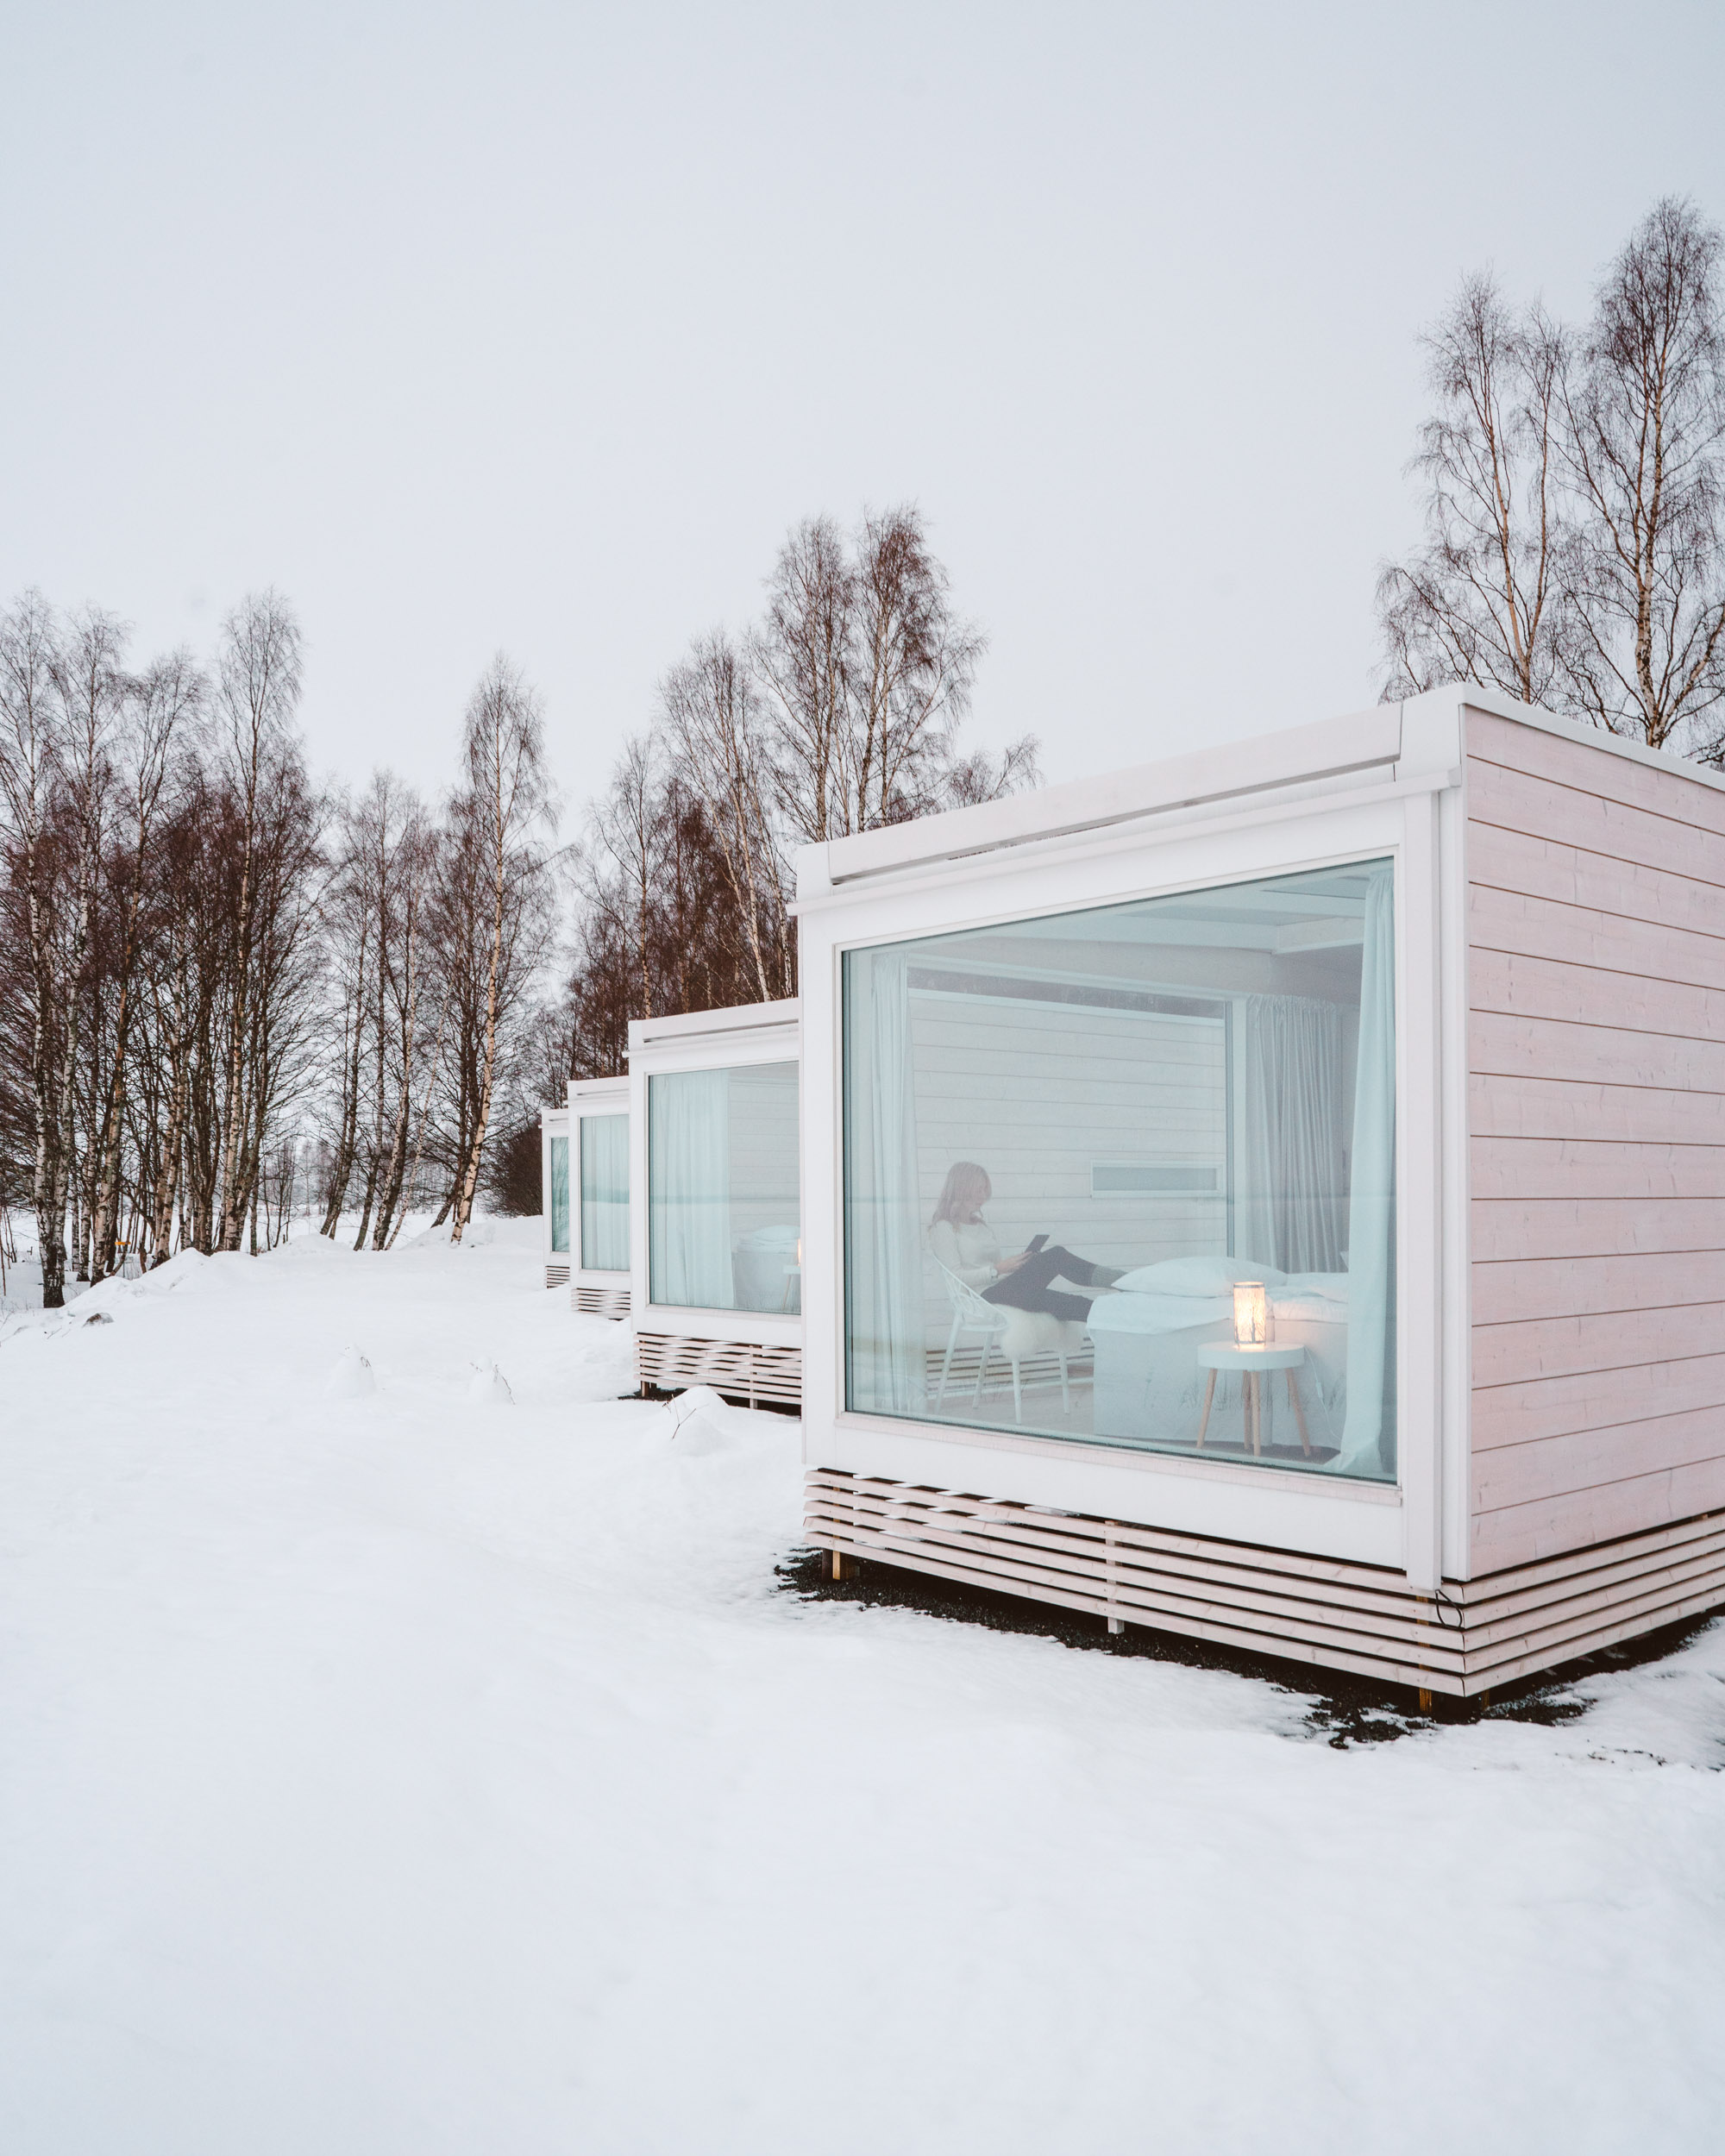 Glass hotel in Kemi, Lapland with snow in winter in Finland edited with Find Us Lost Presets